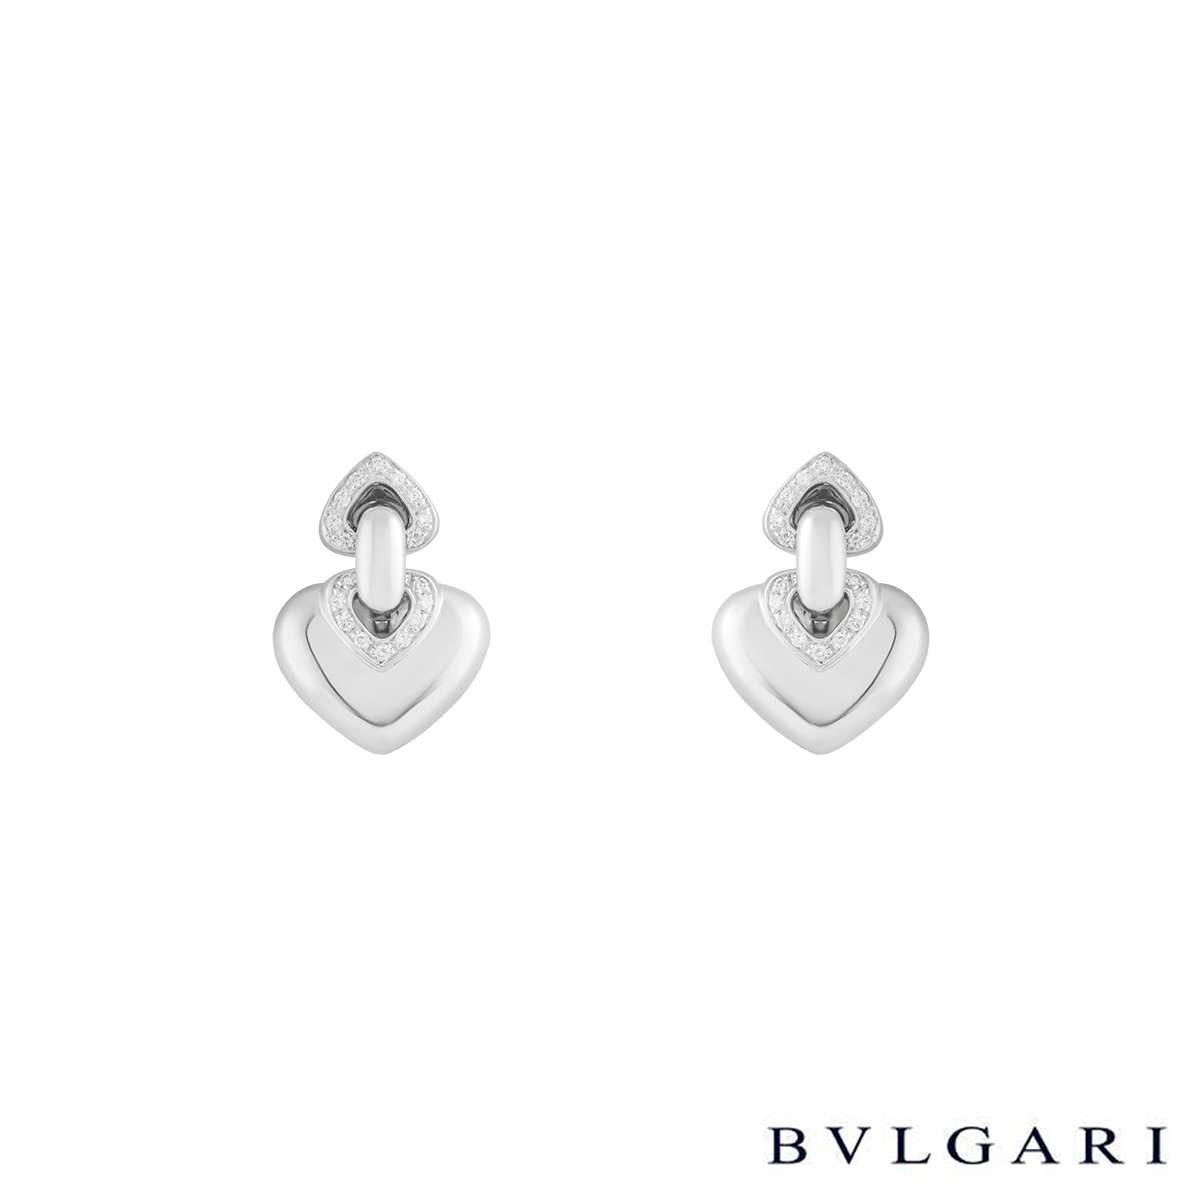 Bvlgari 18k White Gold Doppio Cuore Diamond Earrings 0.29ct